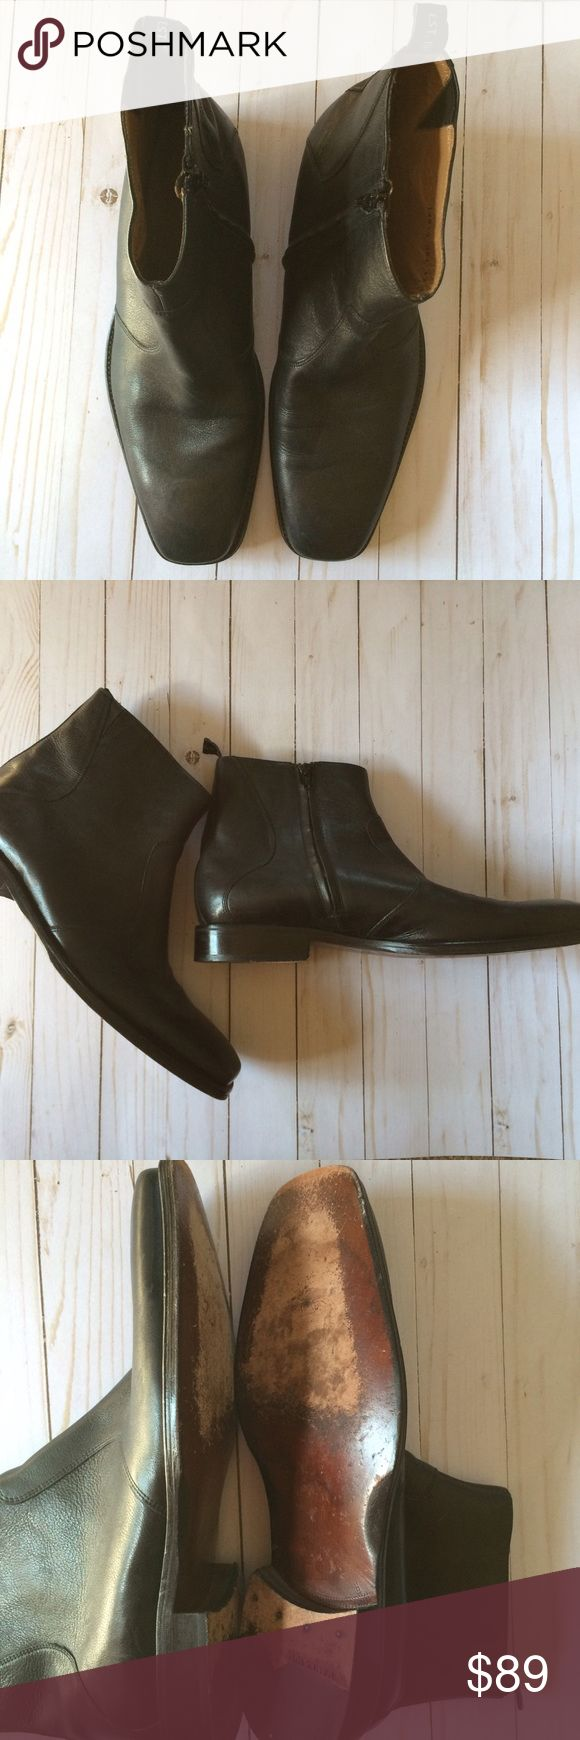 Florsheim Imperial Leather Black Zipper Boots 13D Excellent used condition! Size 13D Florsheim Shoes Boots